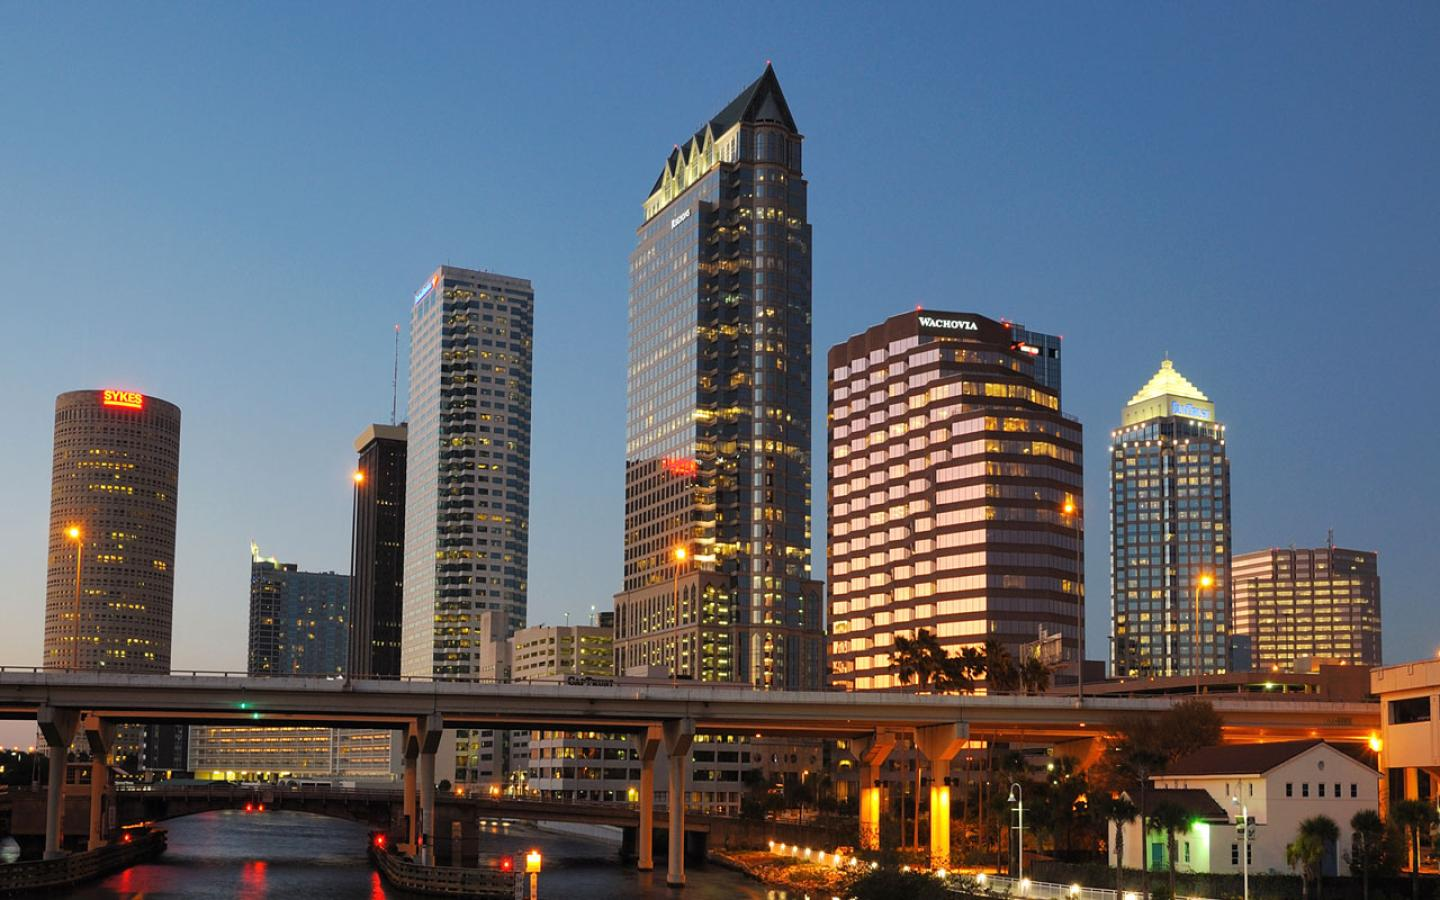 Tampa - Tampa City Skyline Wallpaper #1 1440 x 900